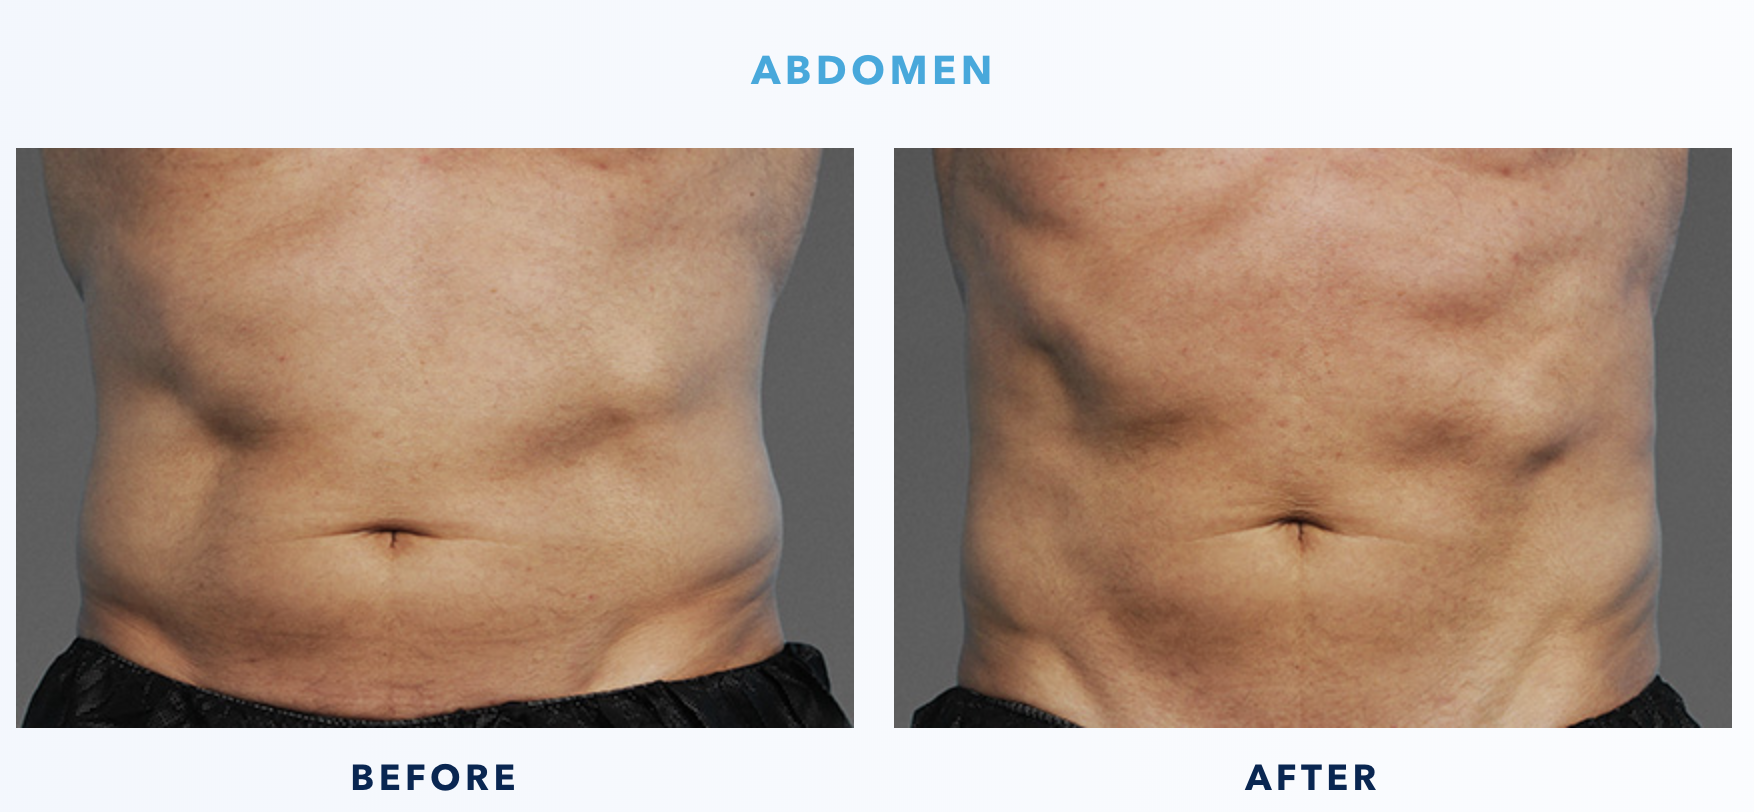 CoolTone Before & After Abdomen Male